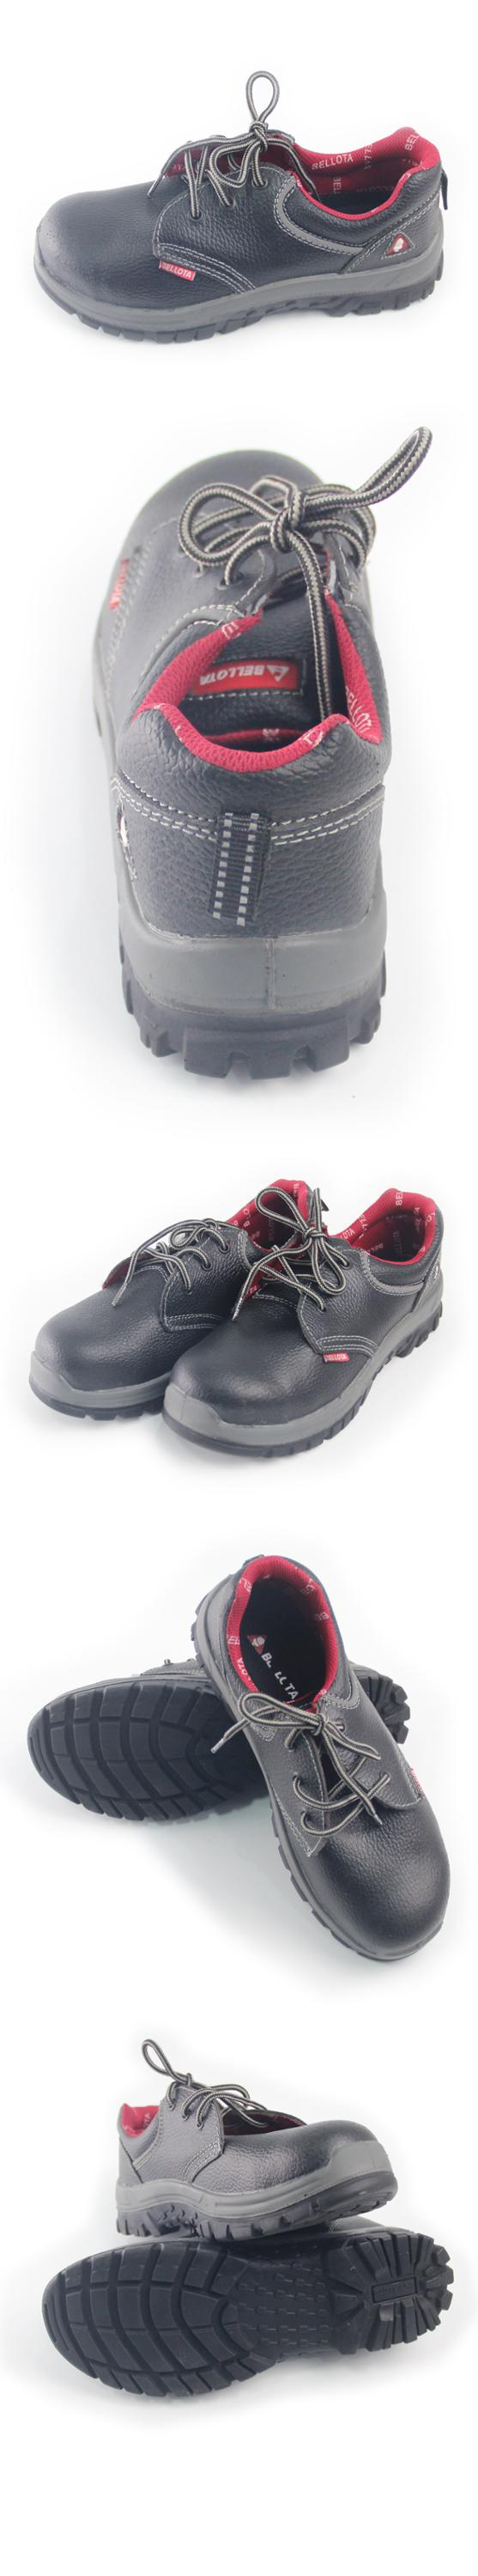 safety shoes with steal toe free sample